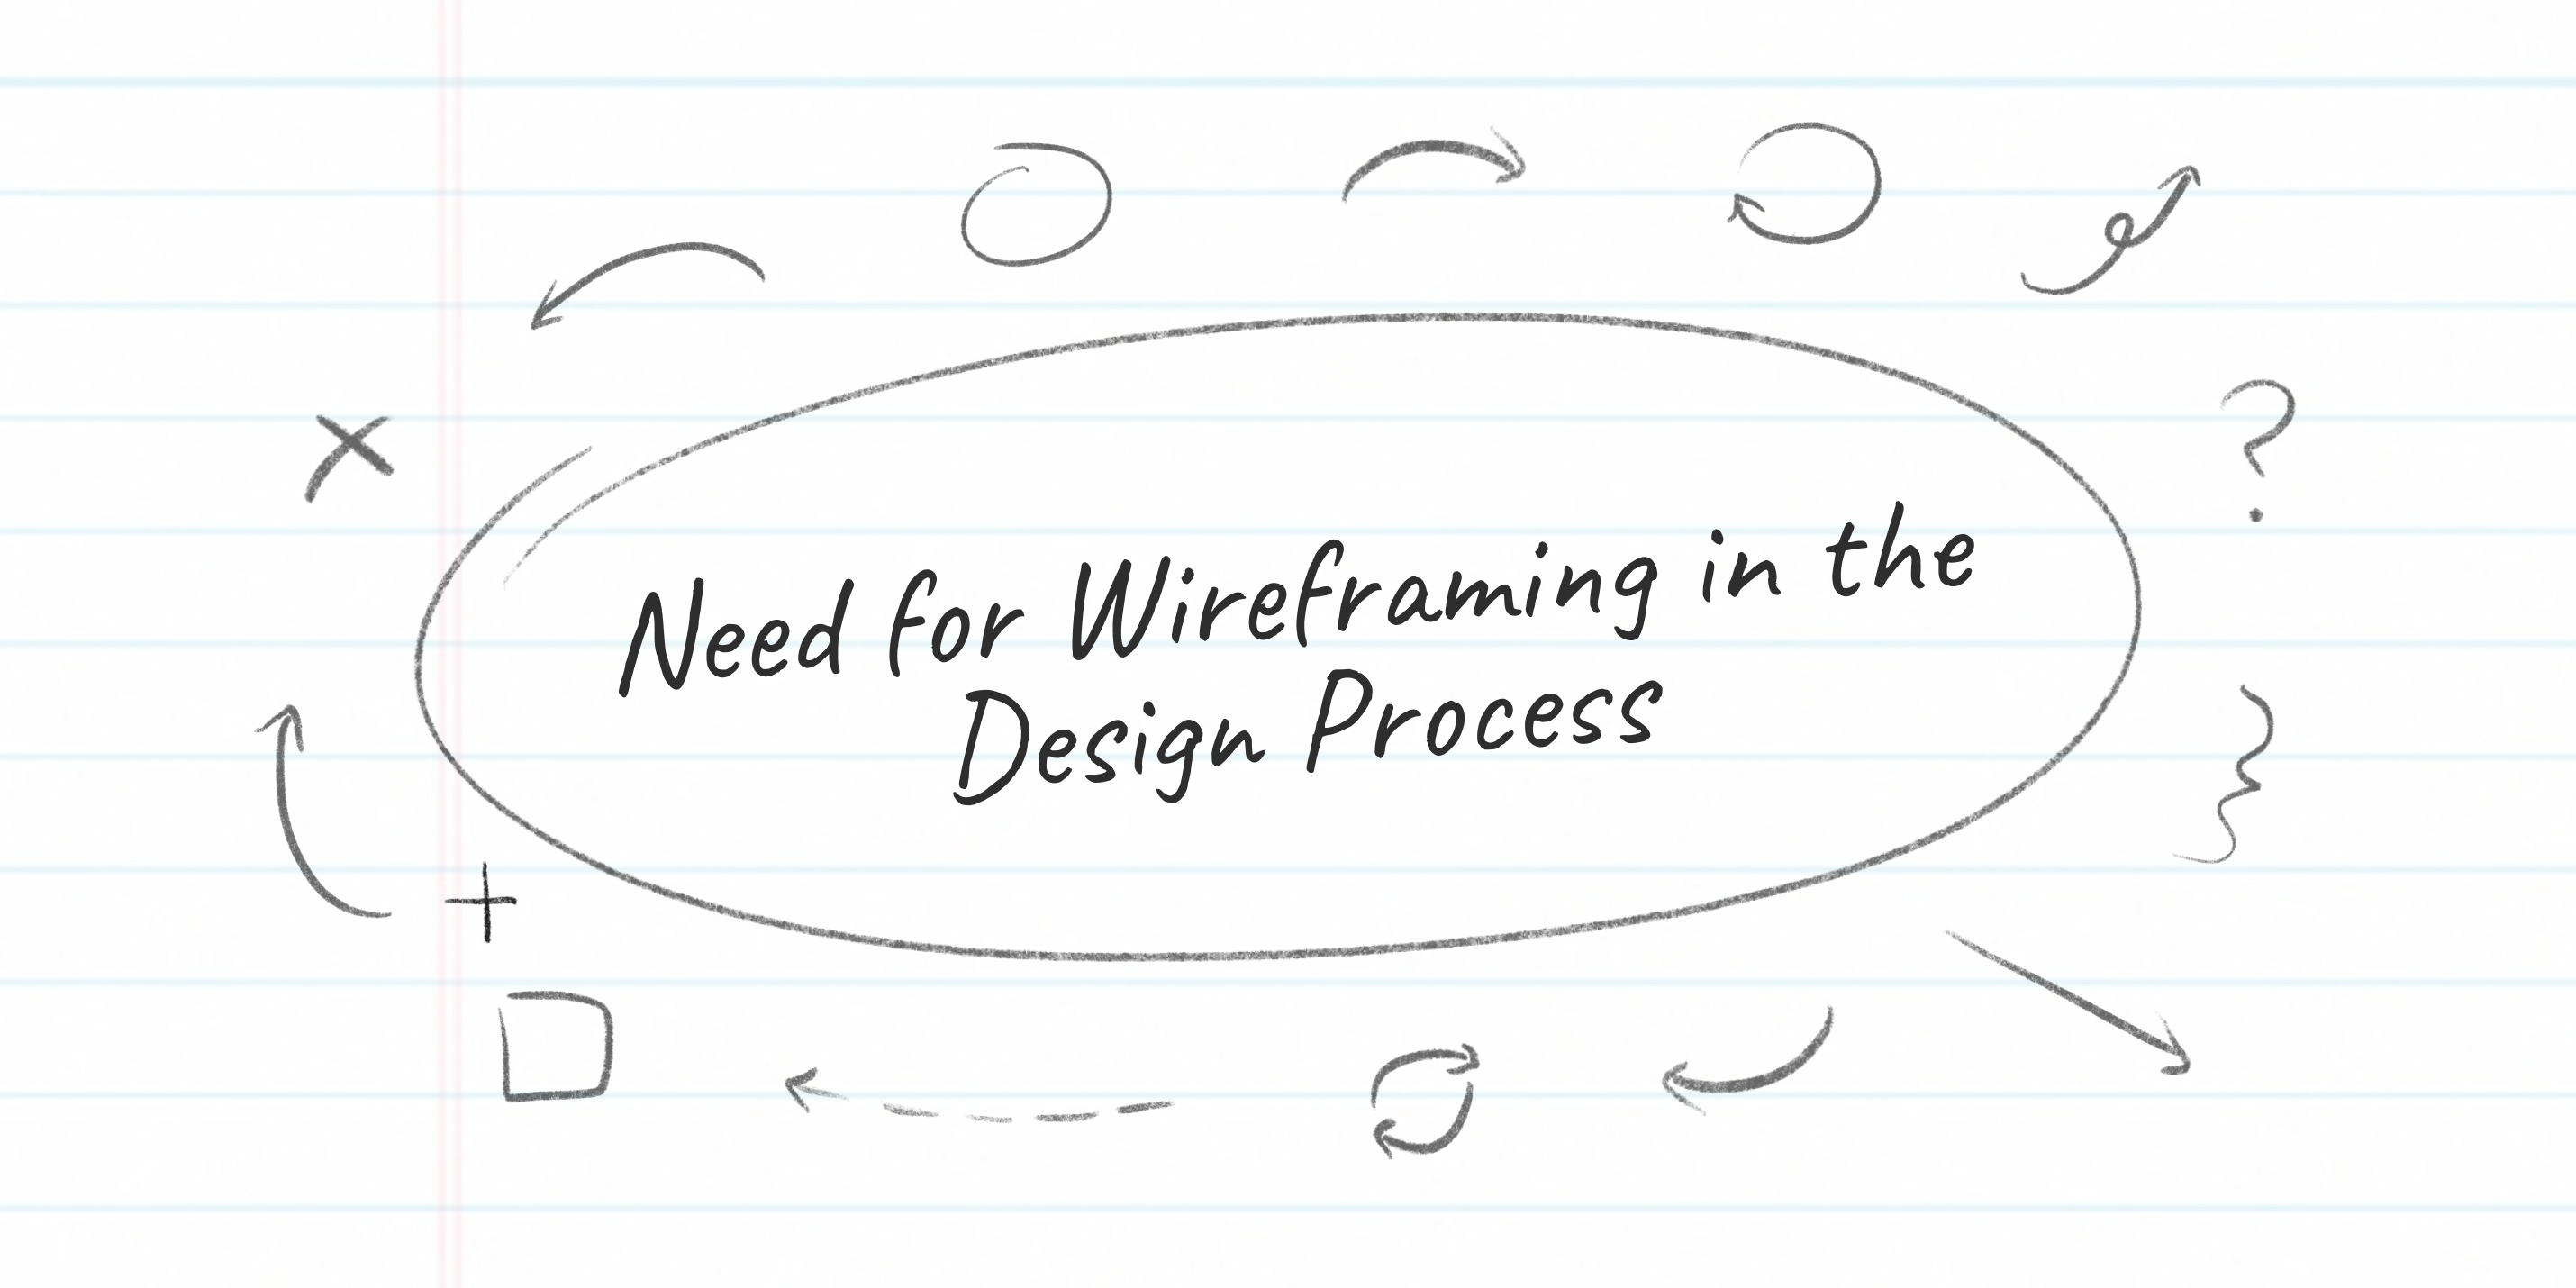 Why the Design Process needs 'Wireframing' to succeed